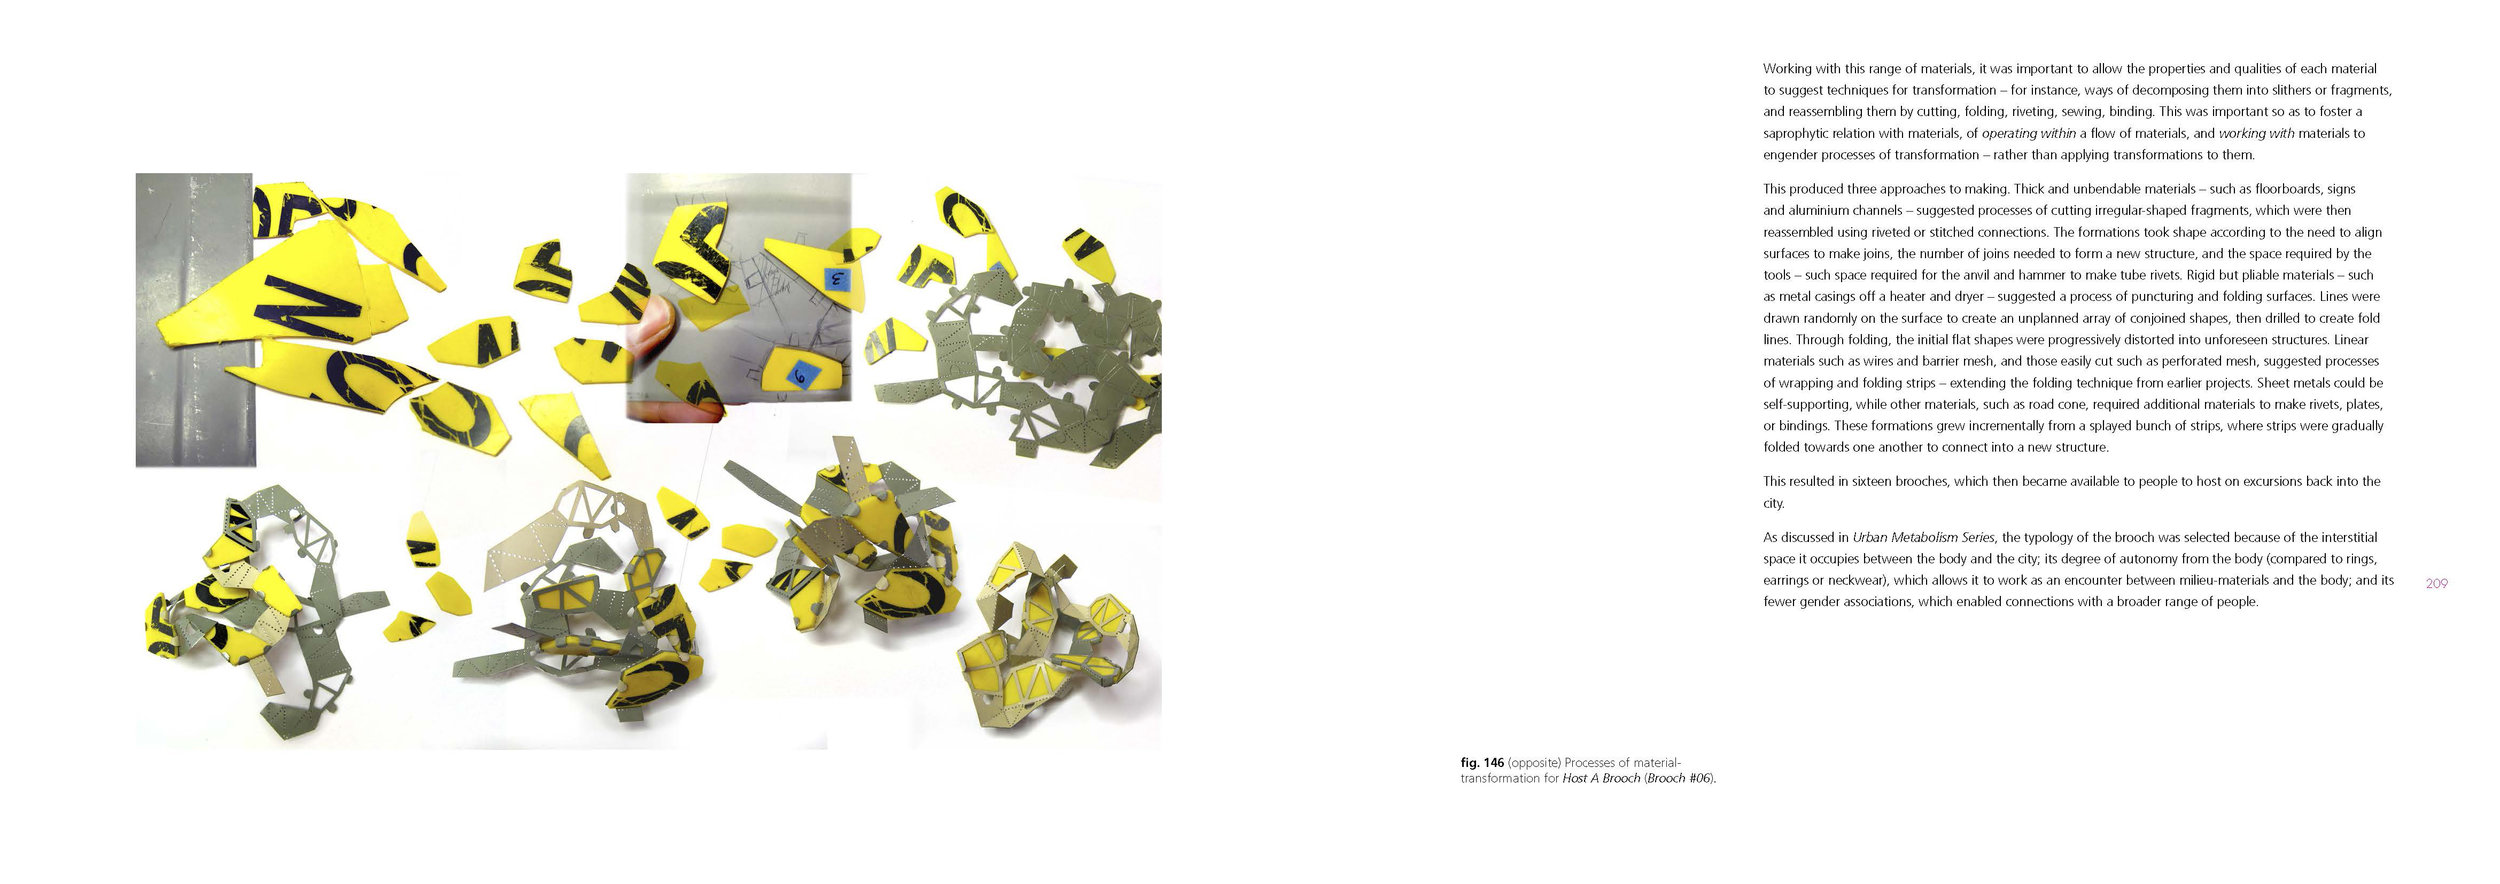 Jacqui Chan_jewellery in the urban milieu_part 3_project milieu 04 + conclusion_Page_018.jpg